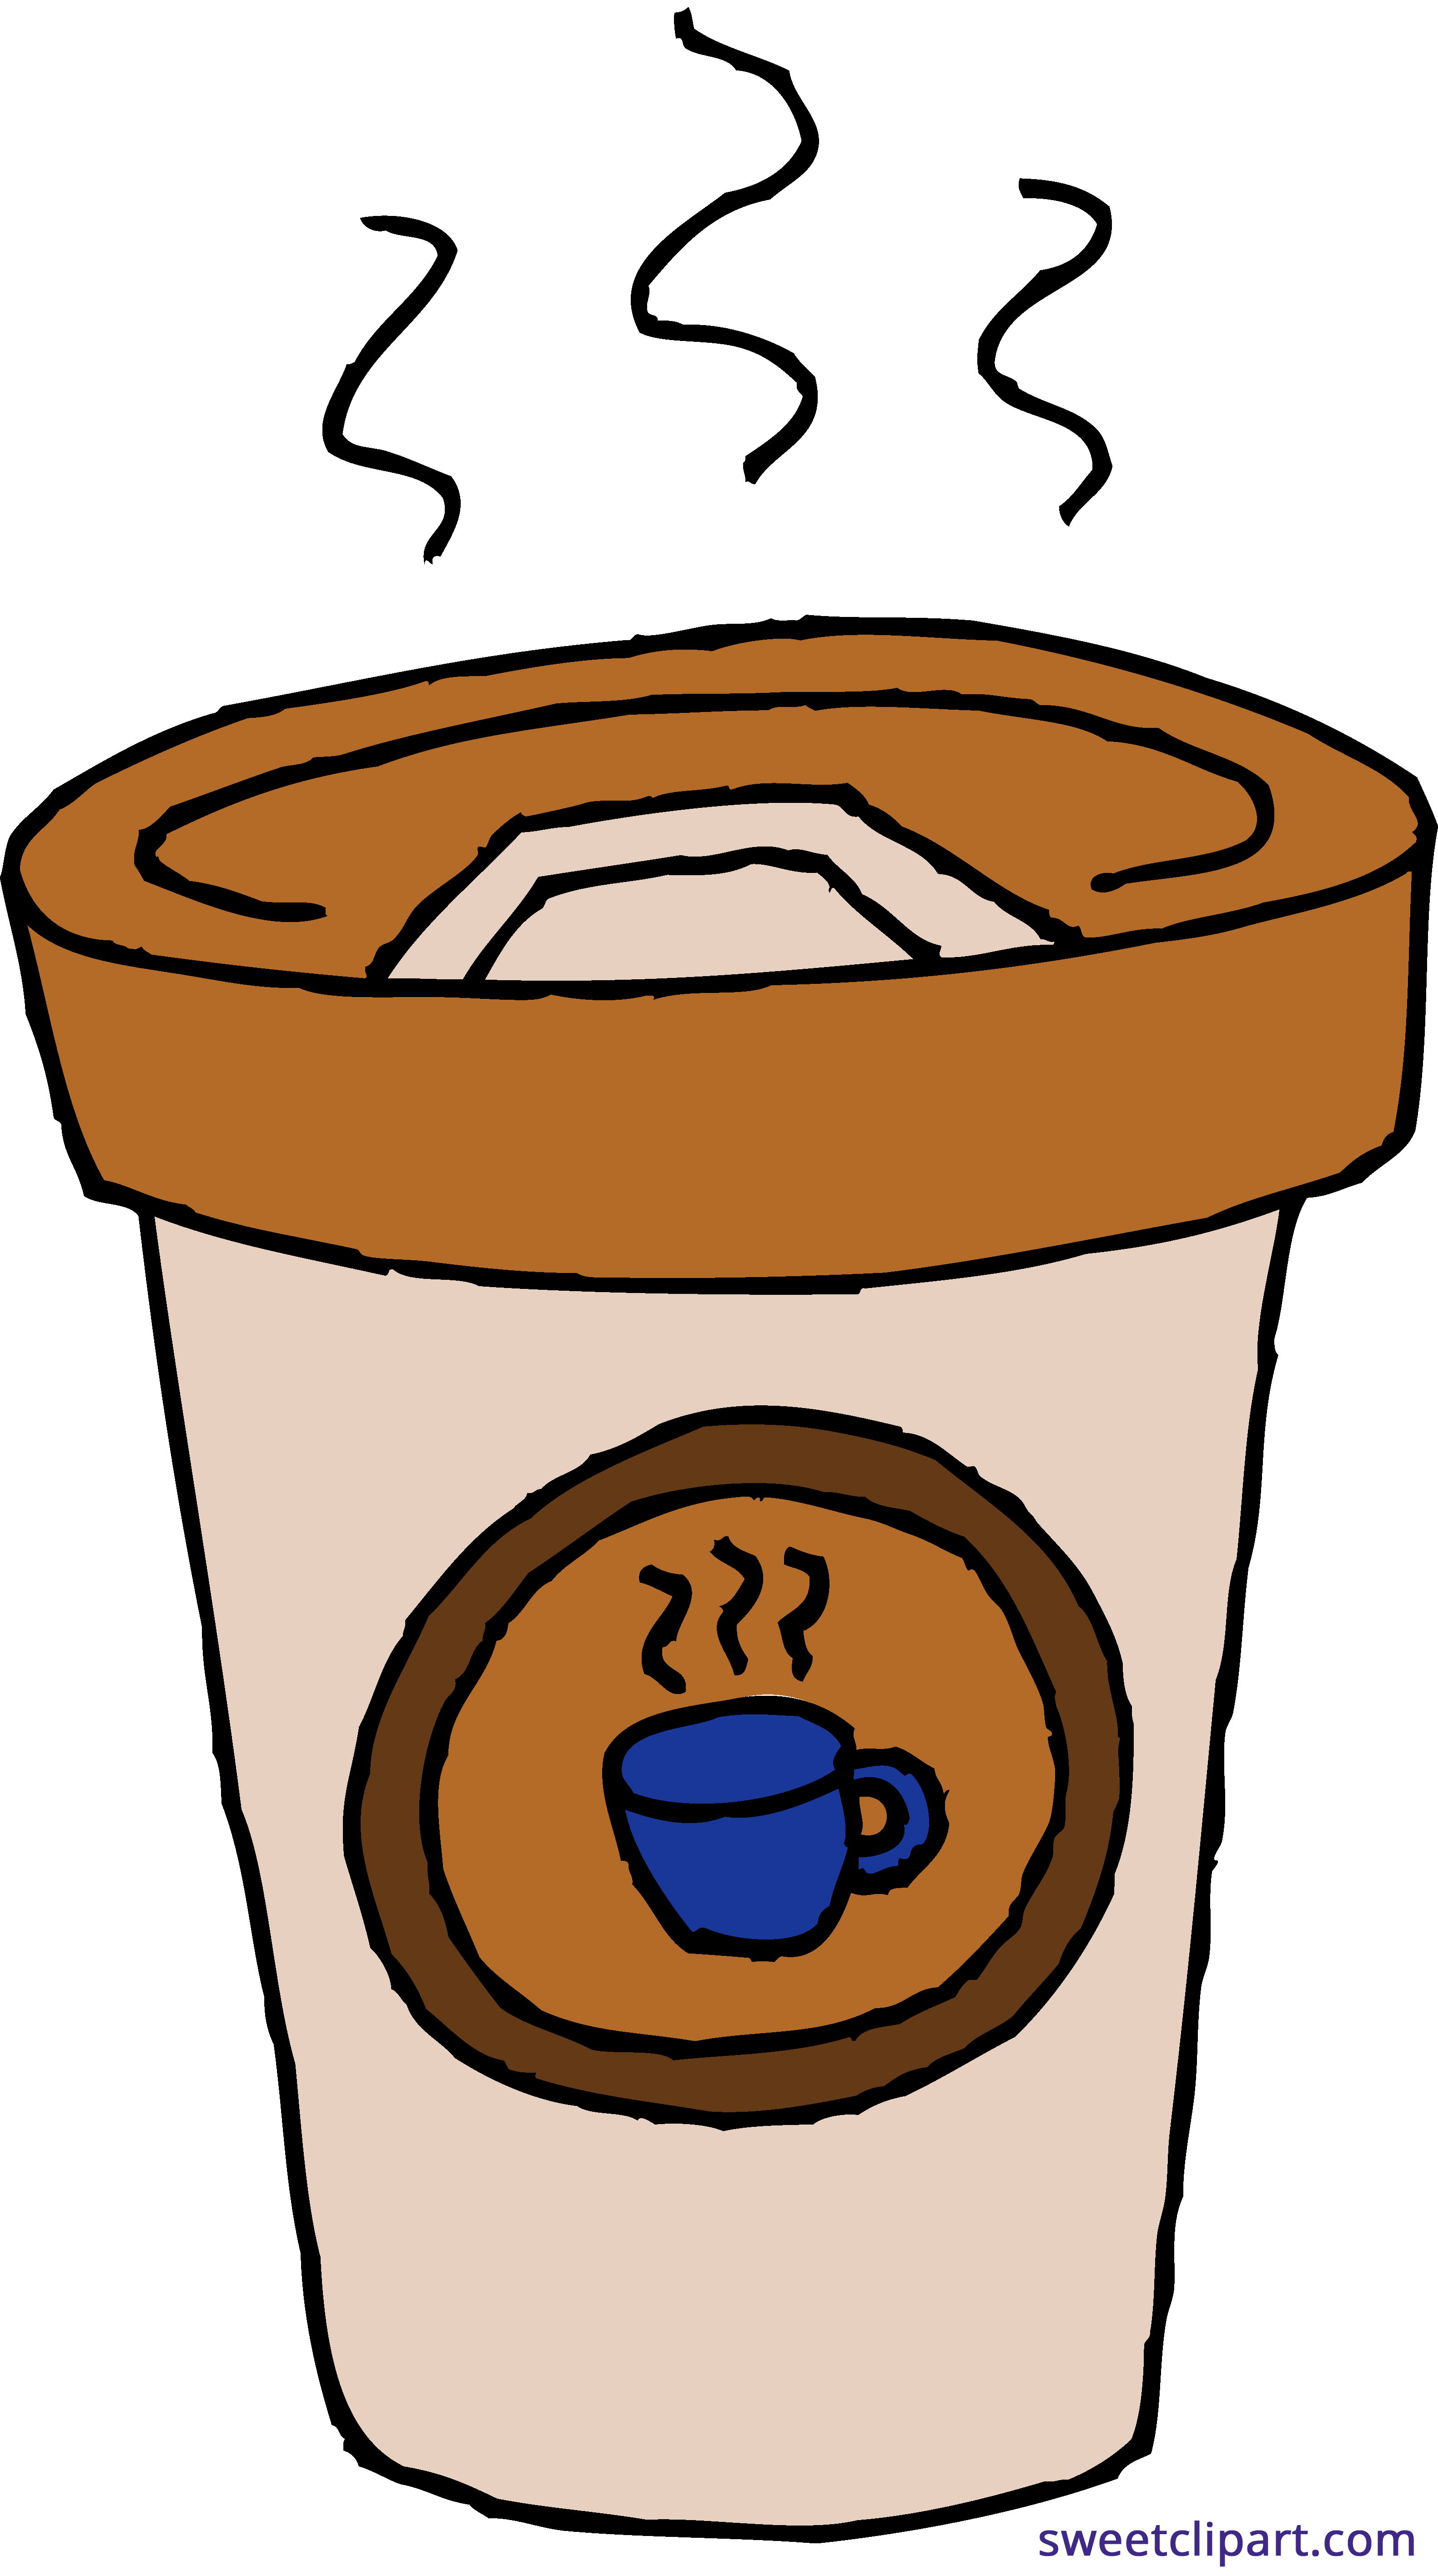 Clipart coffee cute. Latte paper cup sweet